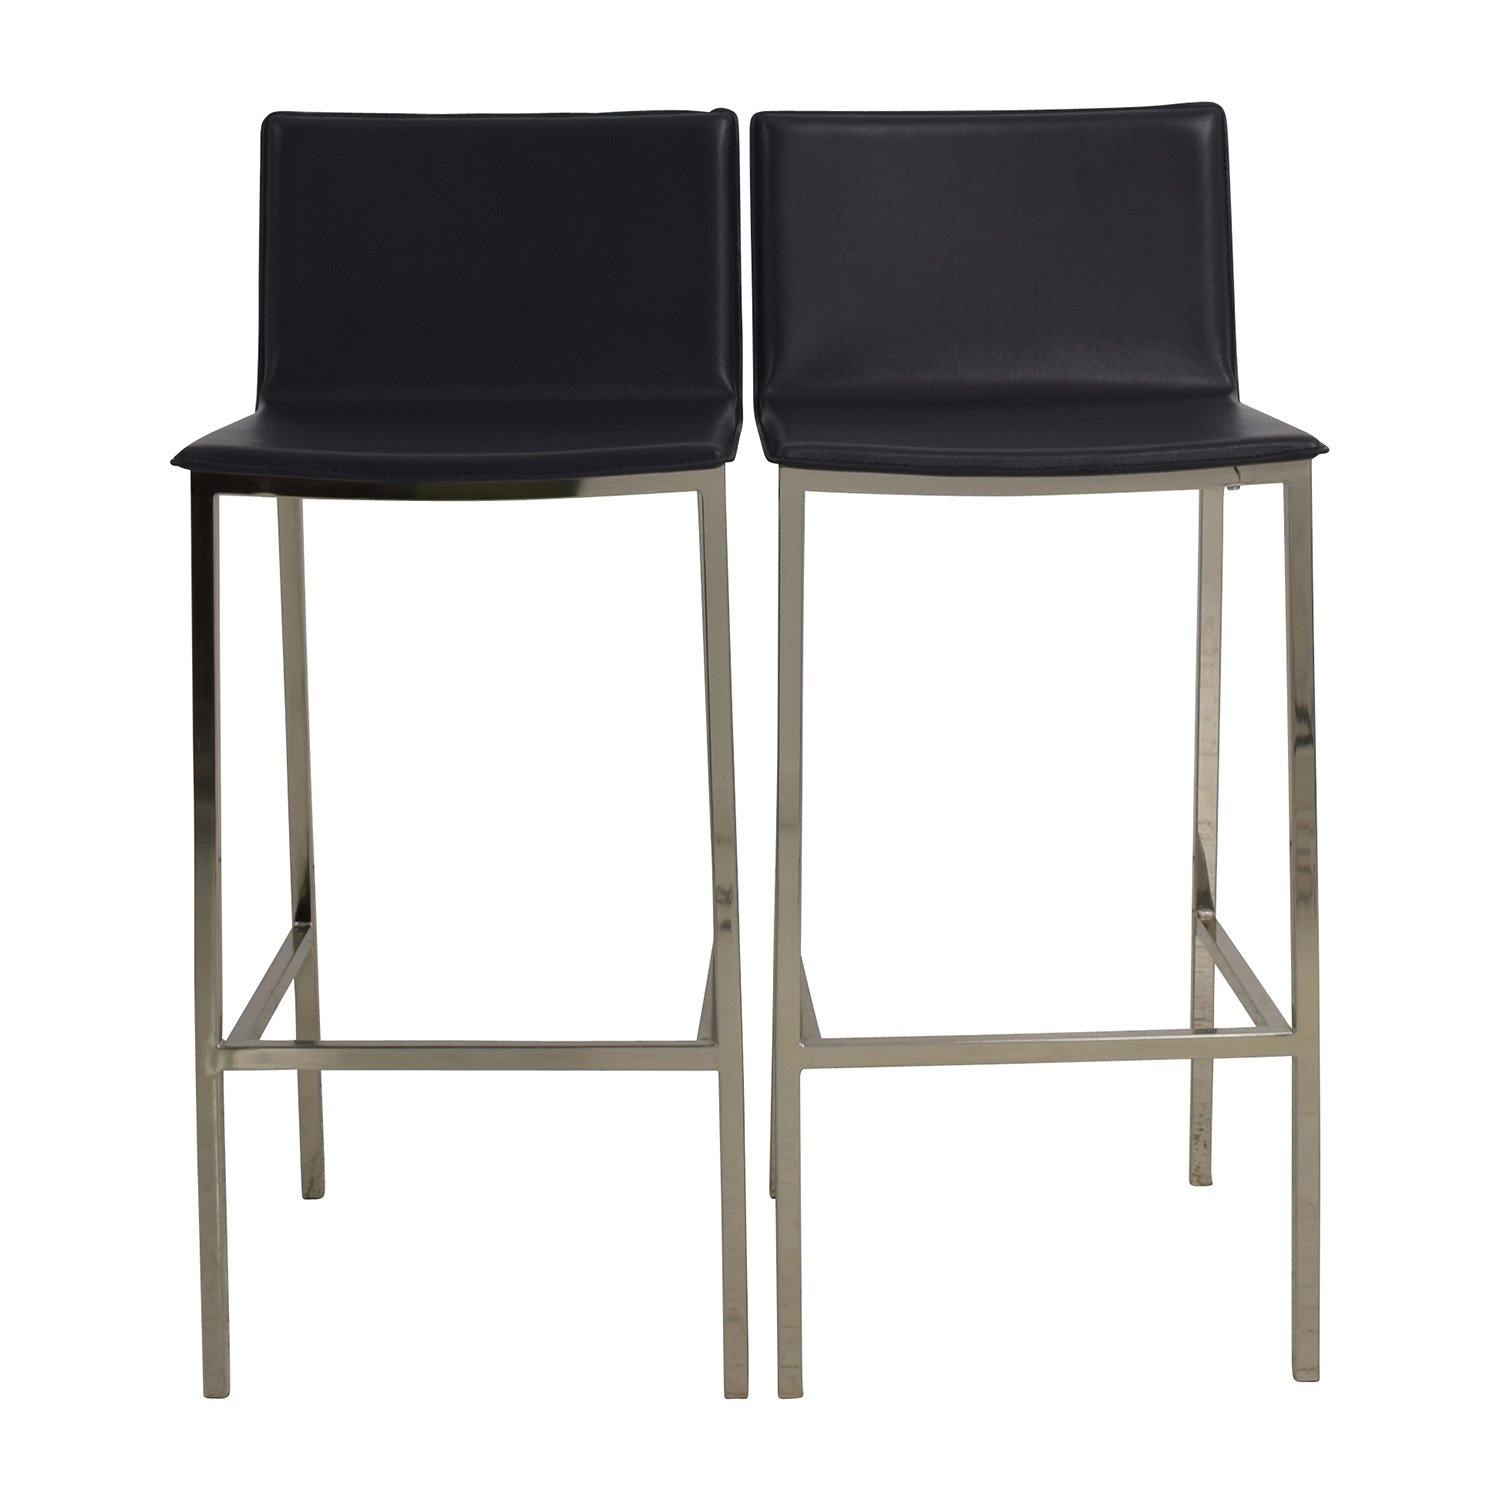 CB2 CB2 Phoenix Carbon Grey Black Leather Bar Stools used